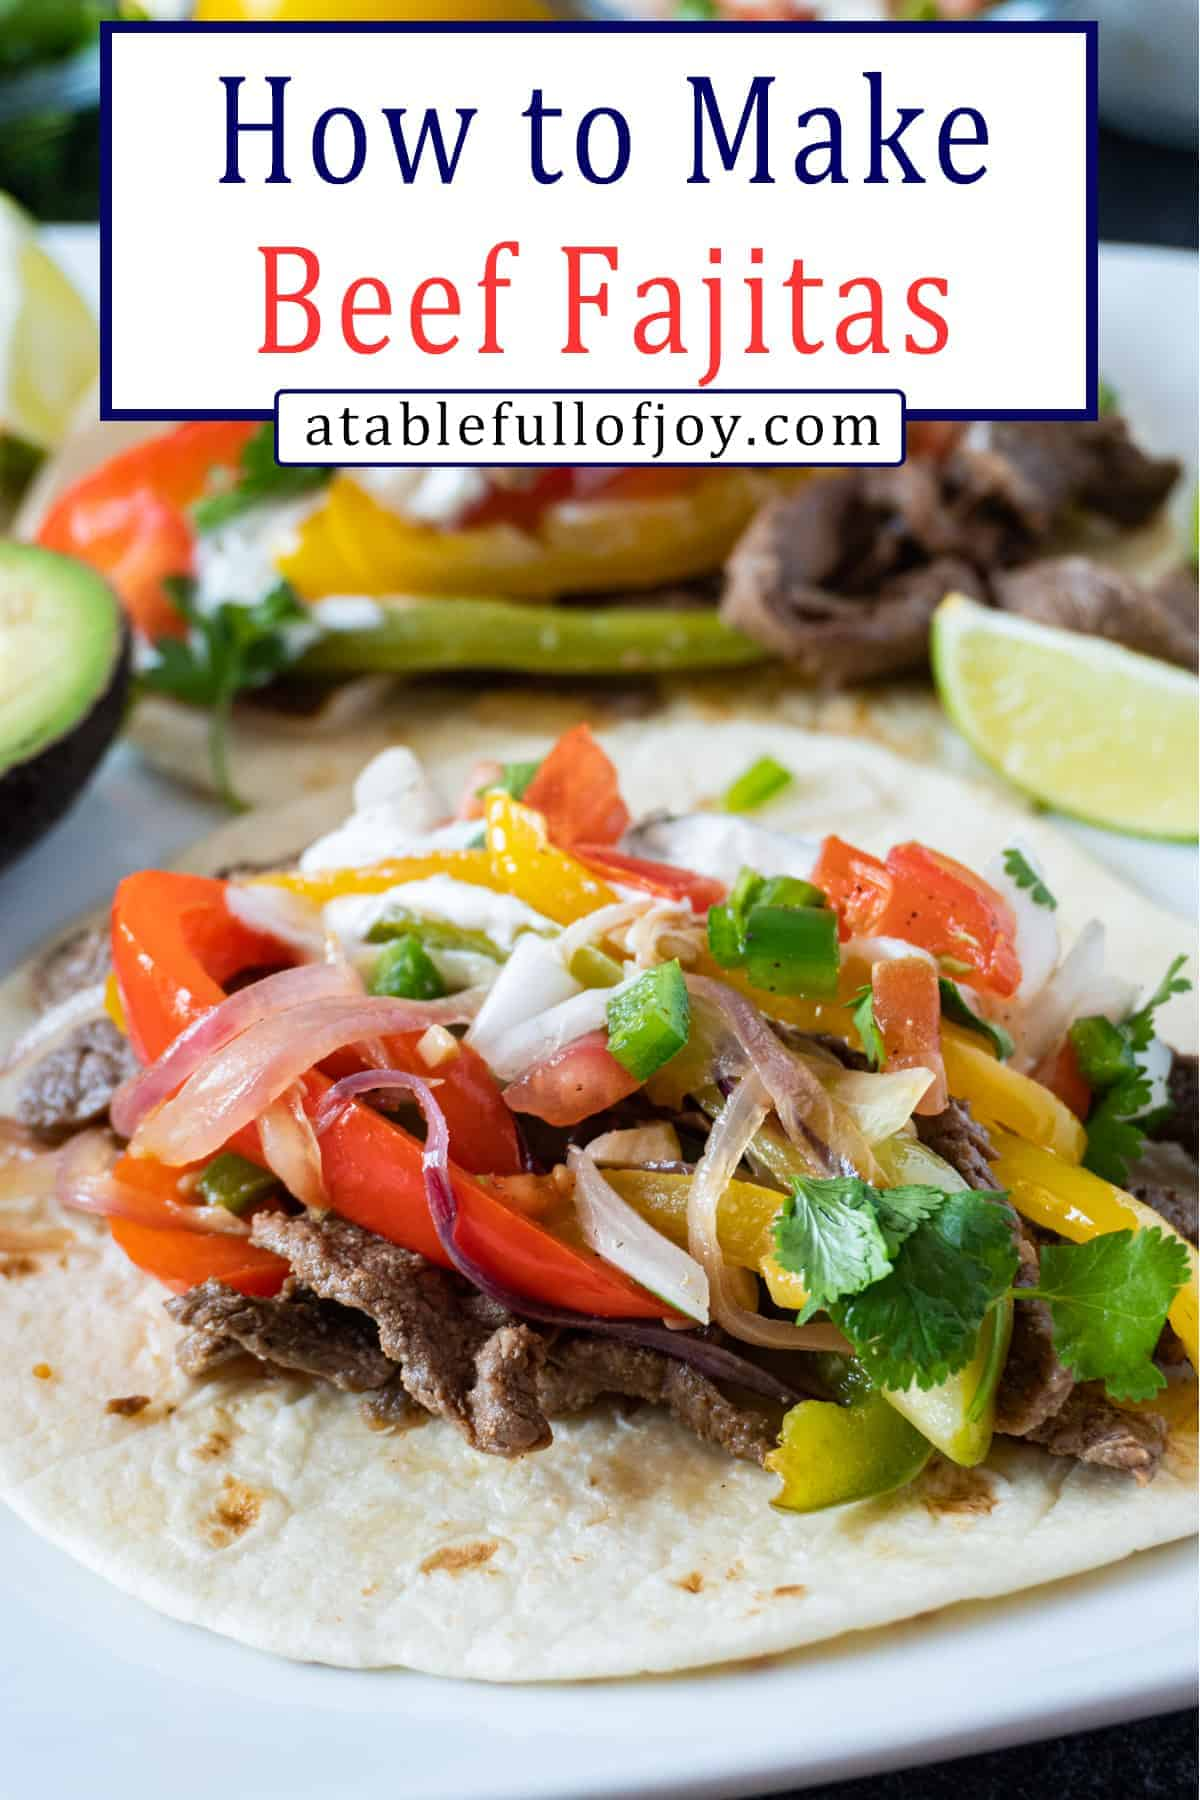 Beef Fajita Recipe Pinterest Pin